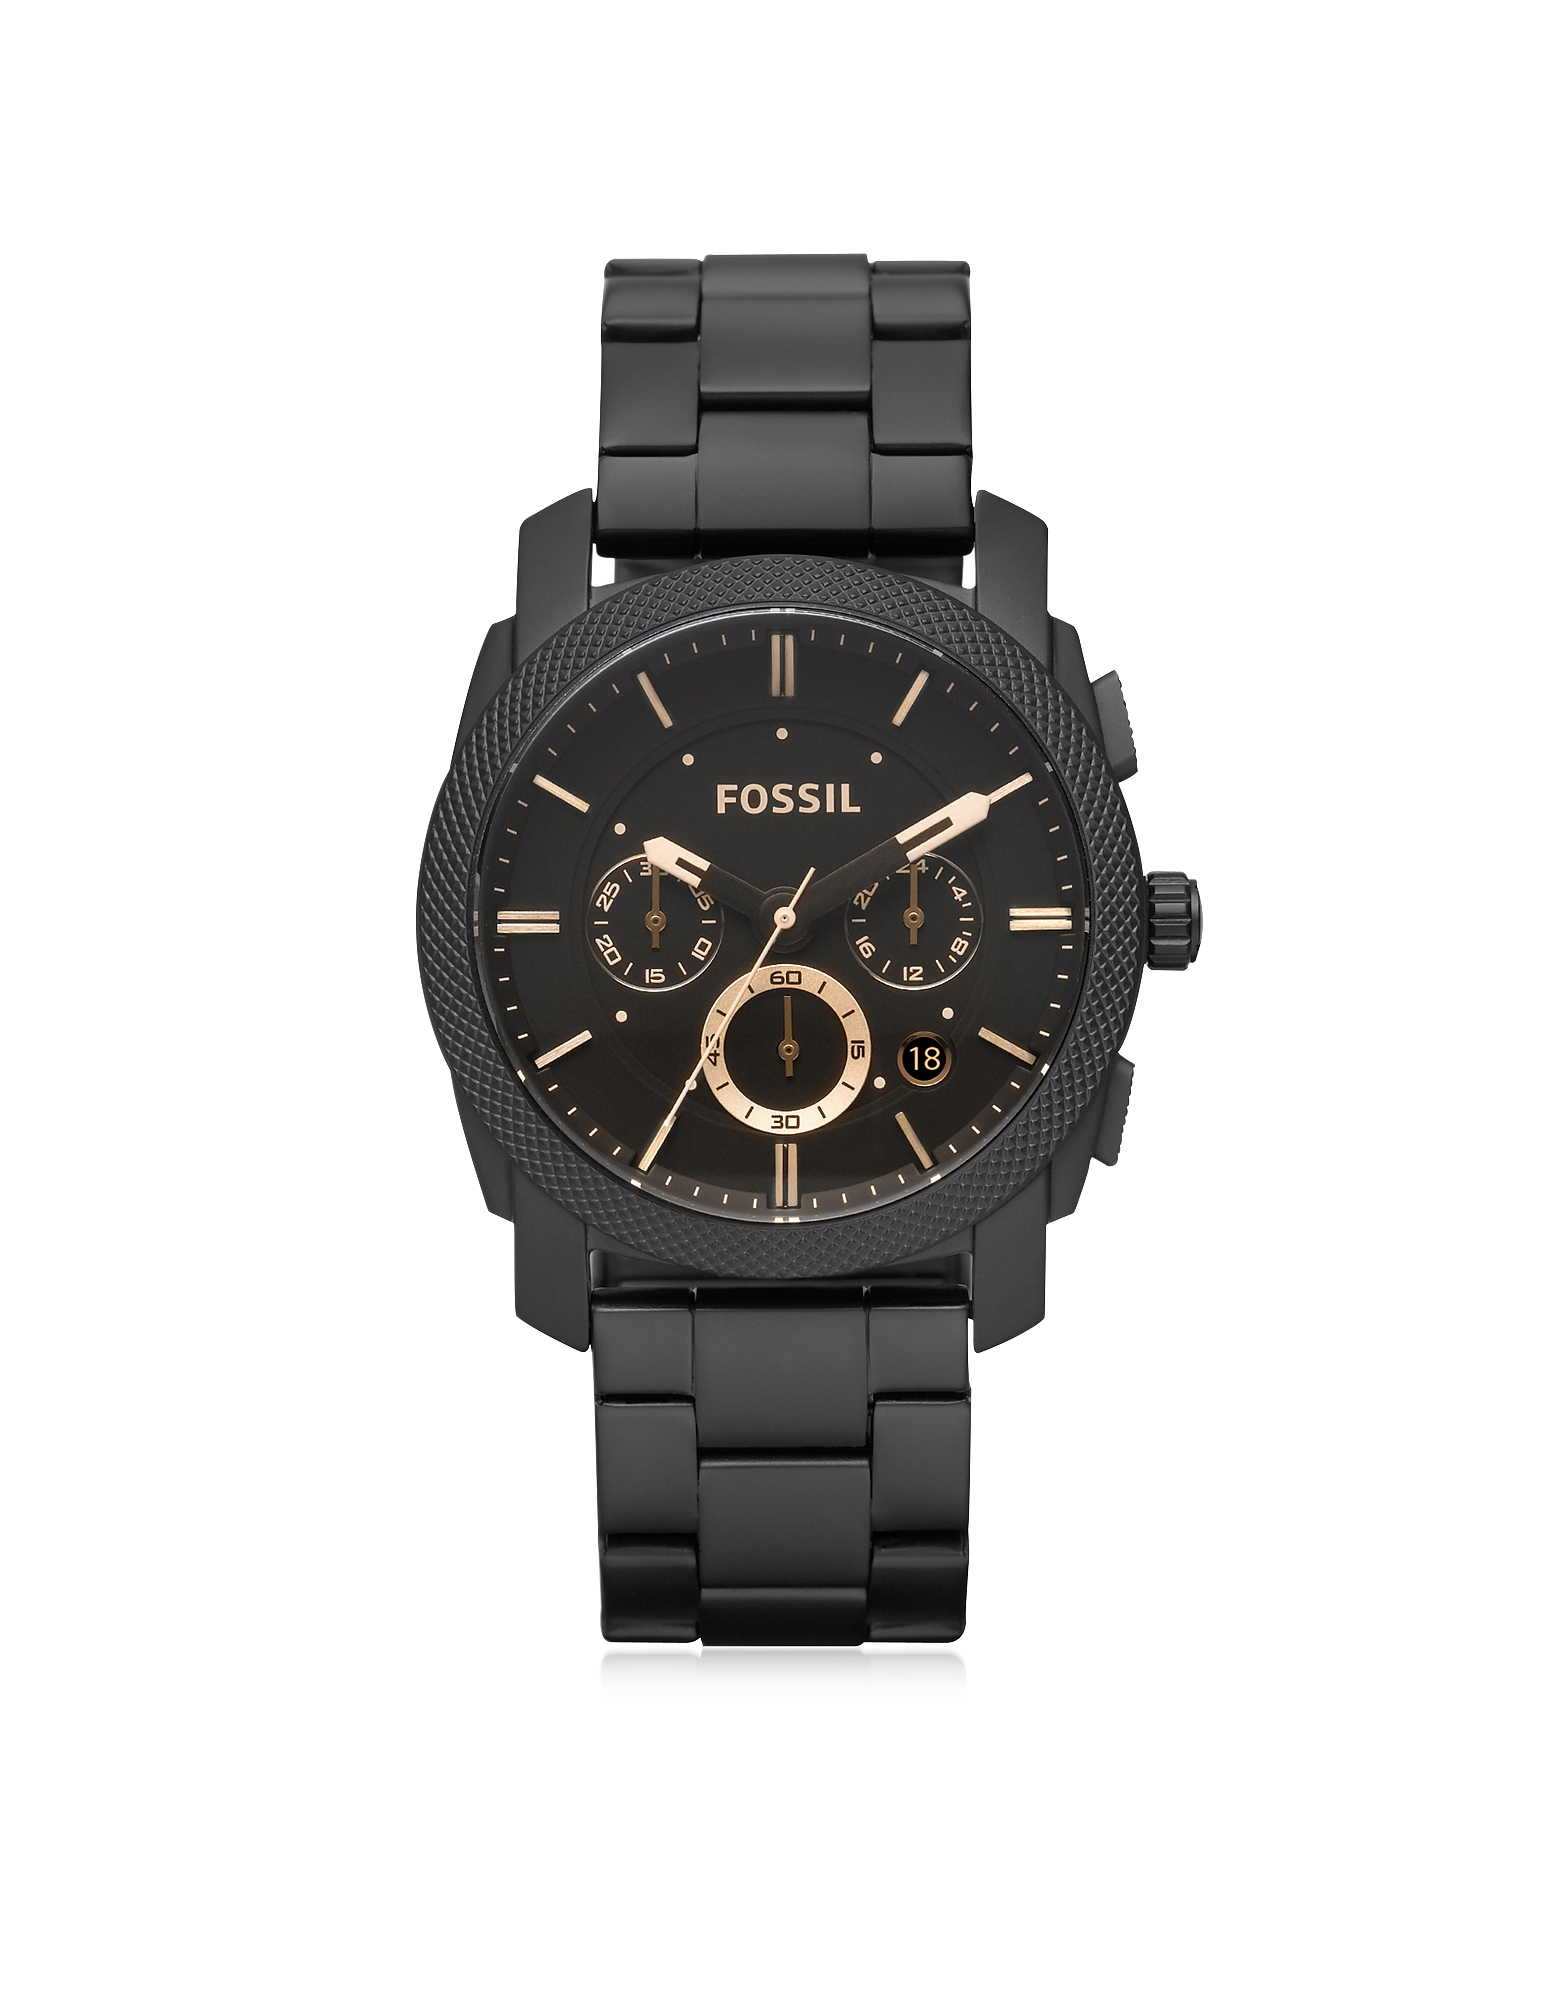 Fossil Men's Watches, Machine Chronograph Black Stainless Steel Men's Watch